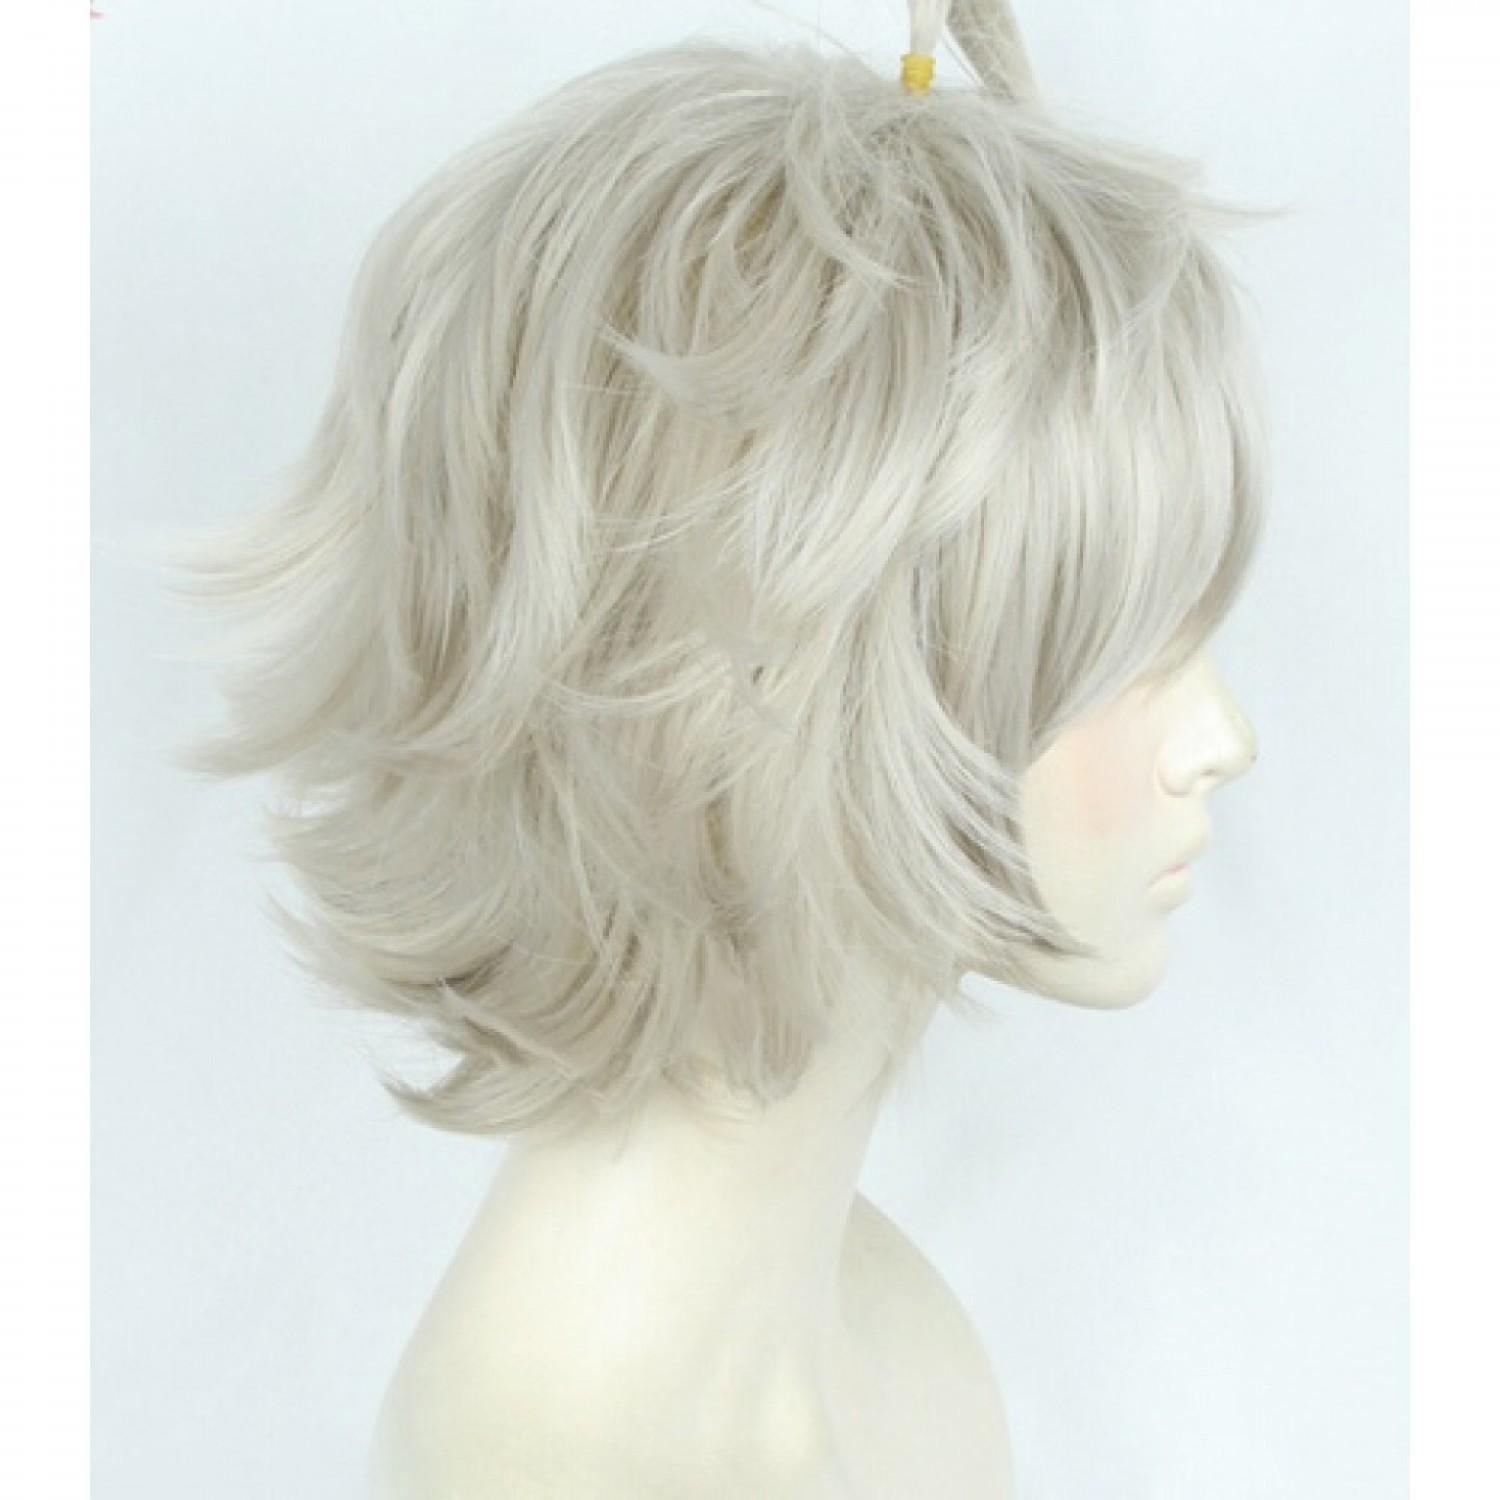 Black Clover Asta Short Anime Styled Cosplay Wig